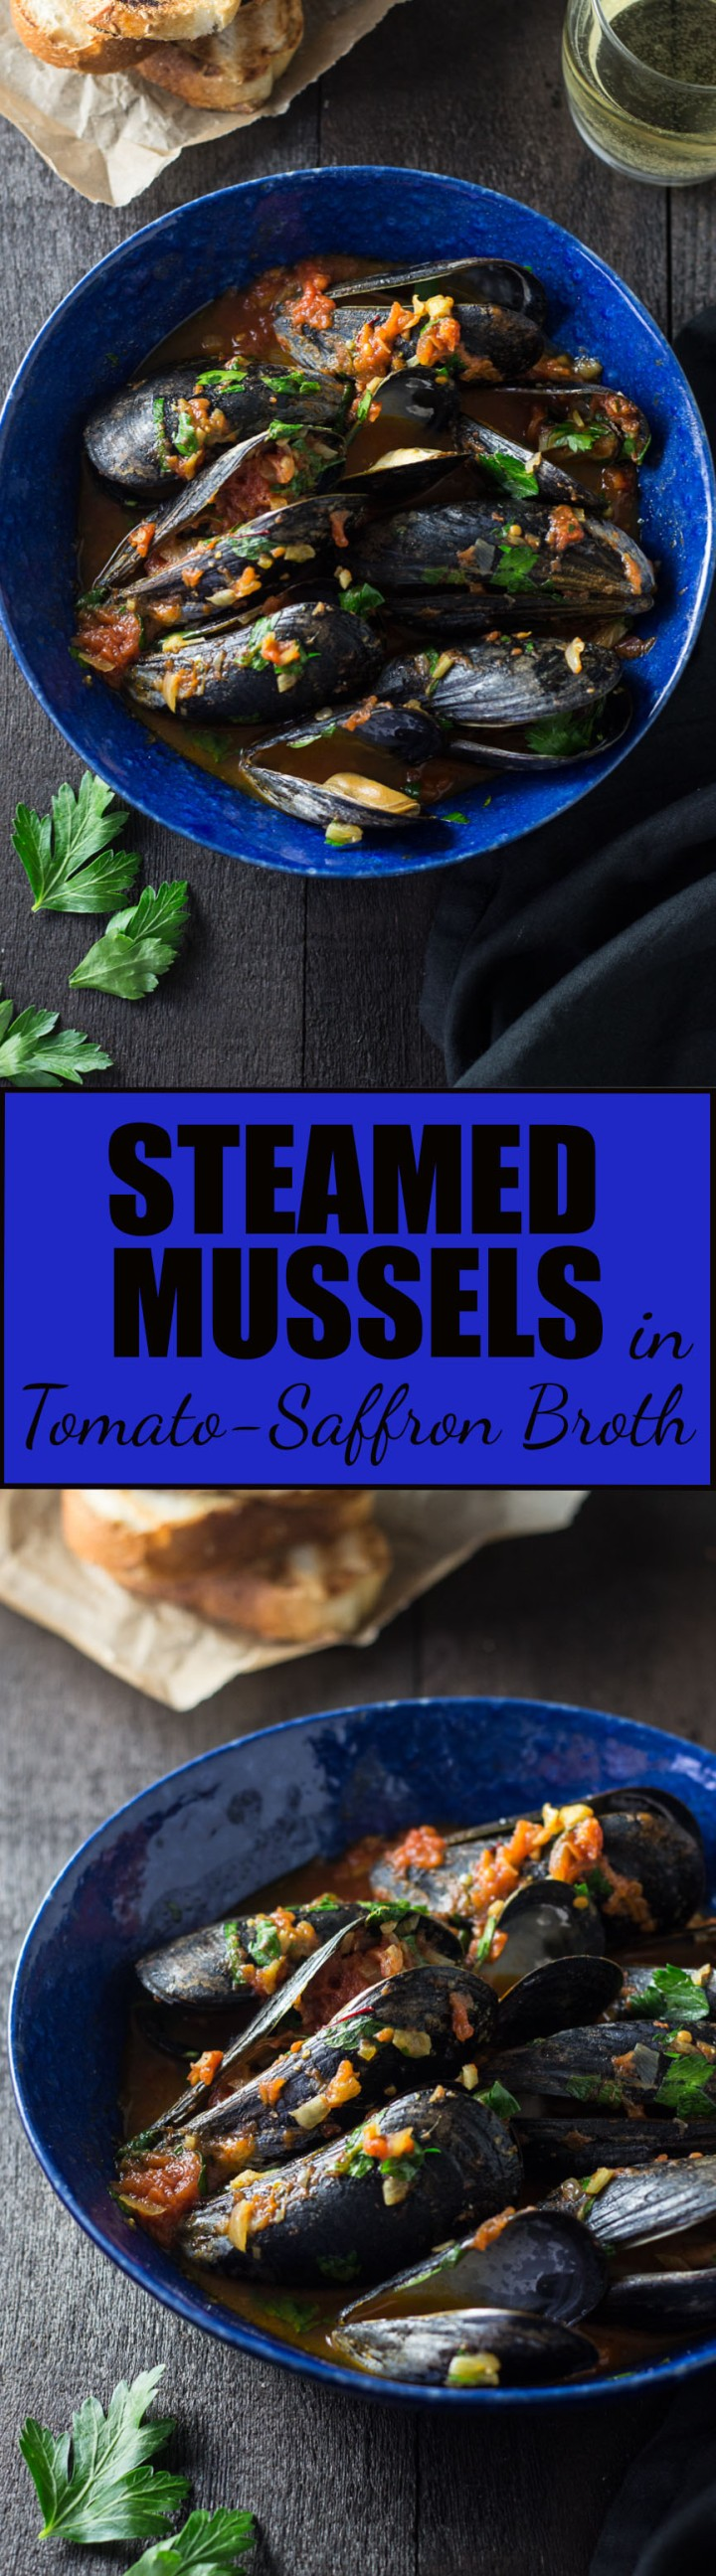 honest mussels mussels in saffron tomato broth recipe yummly 12 9 14 ...